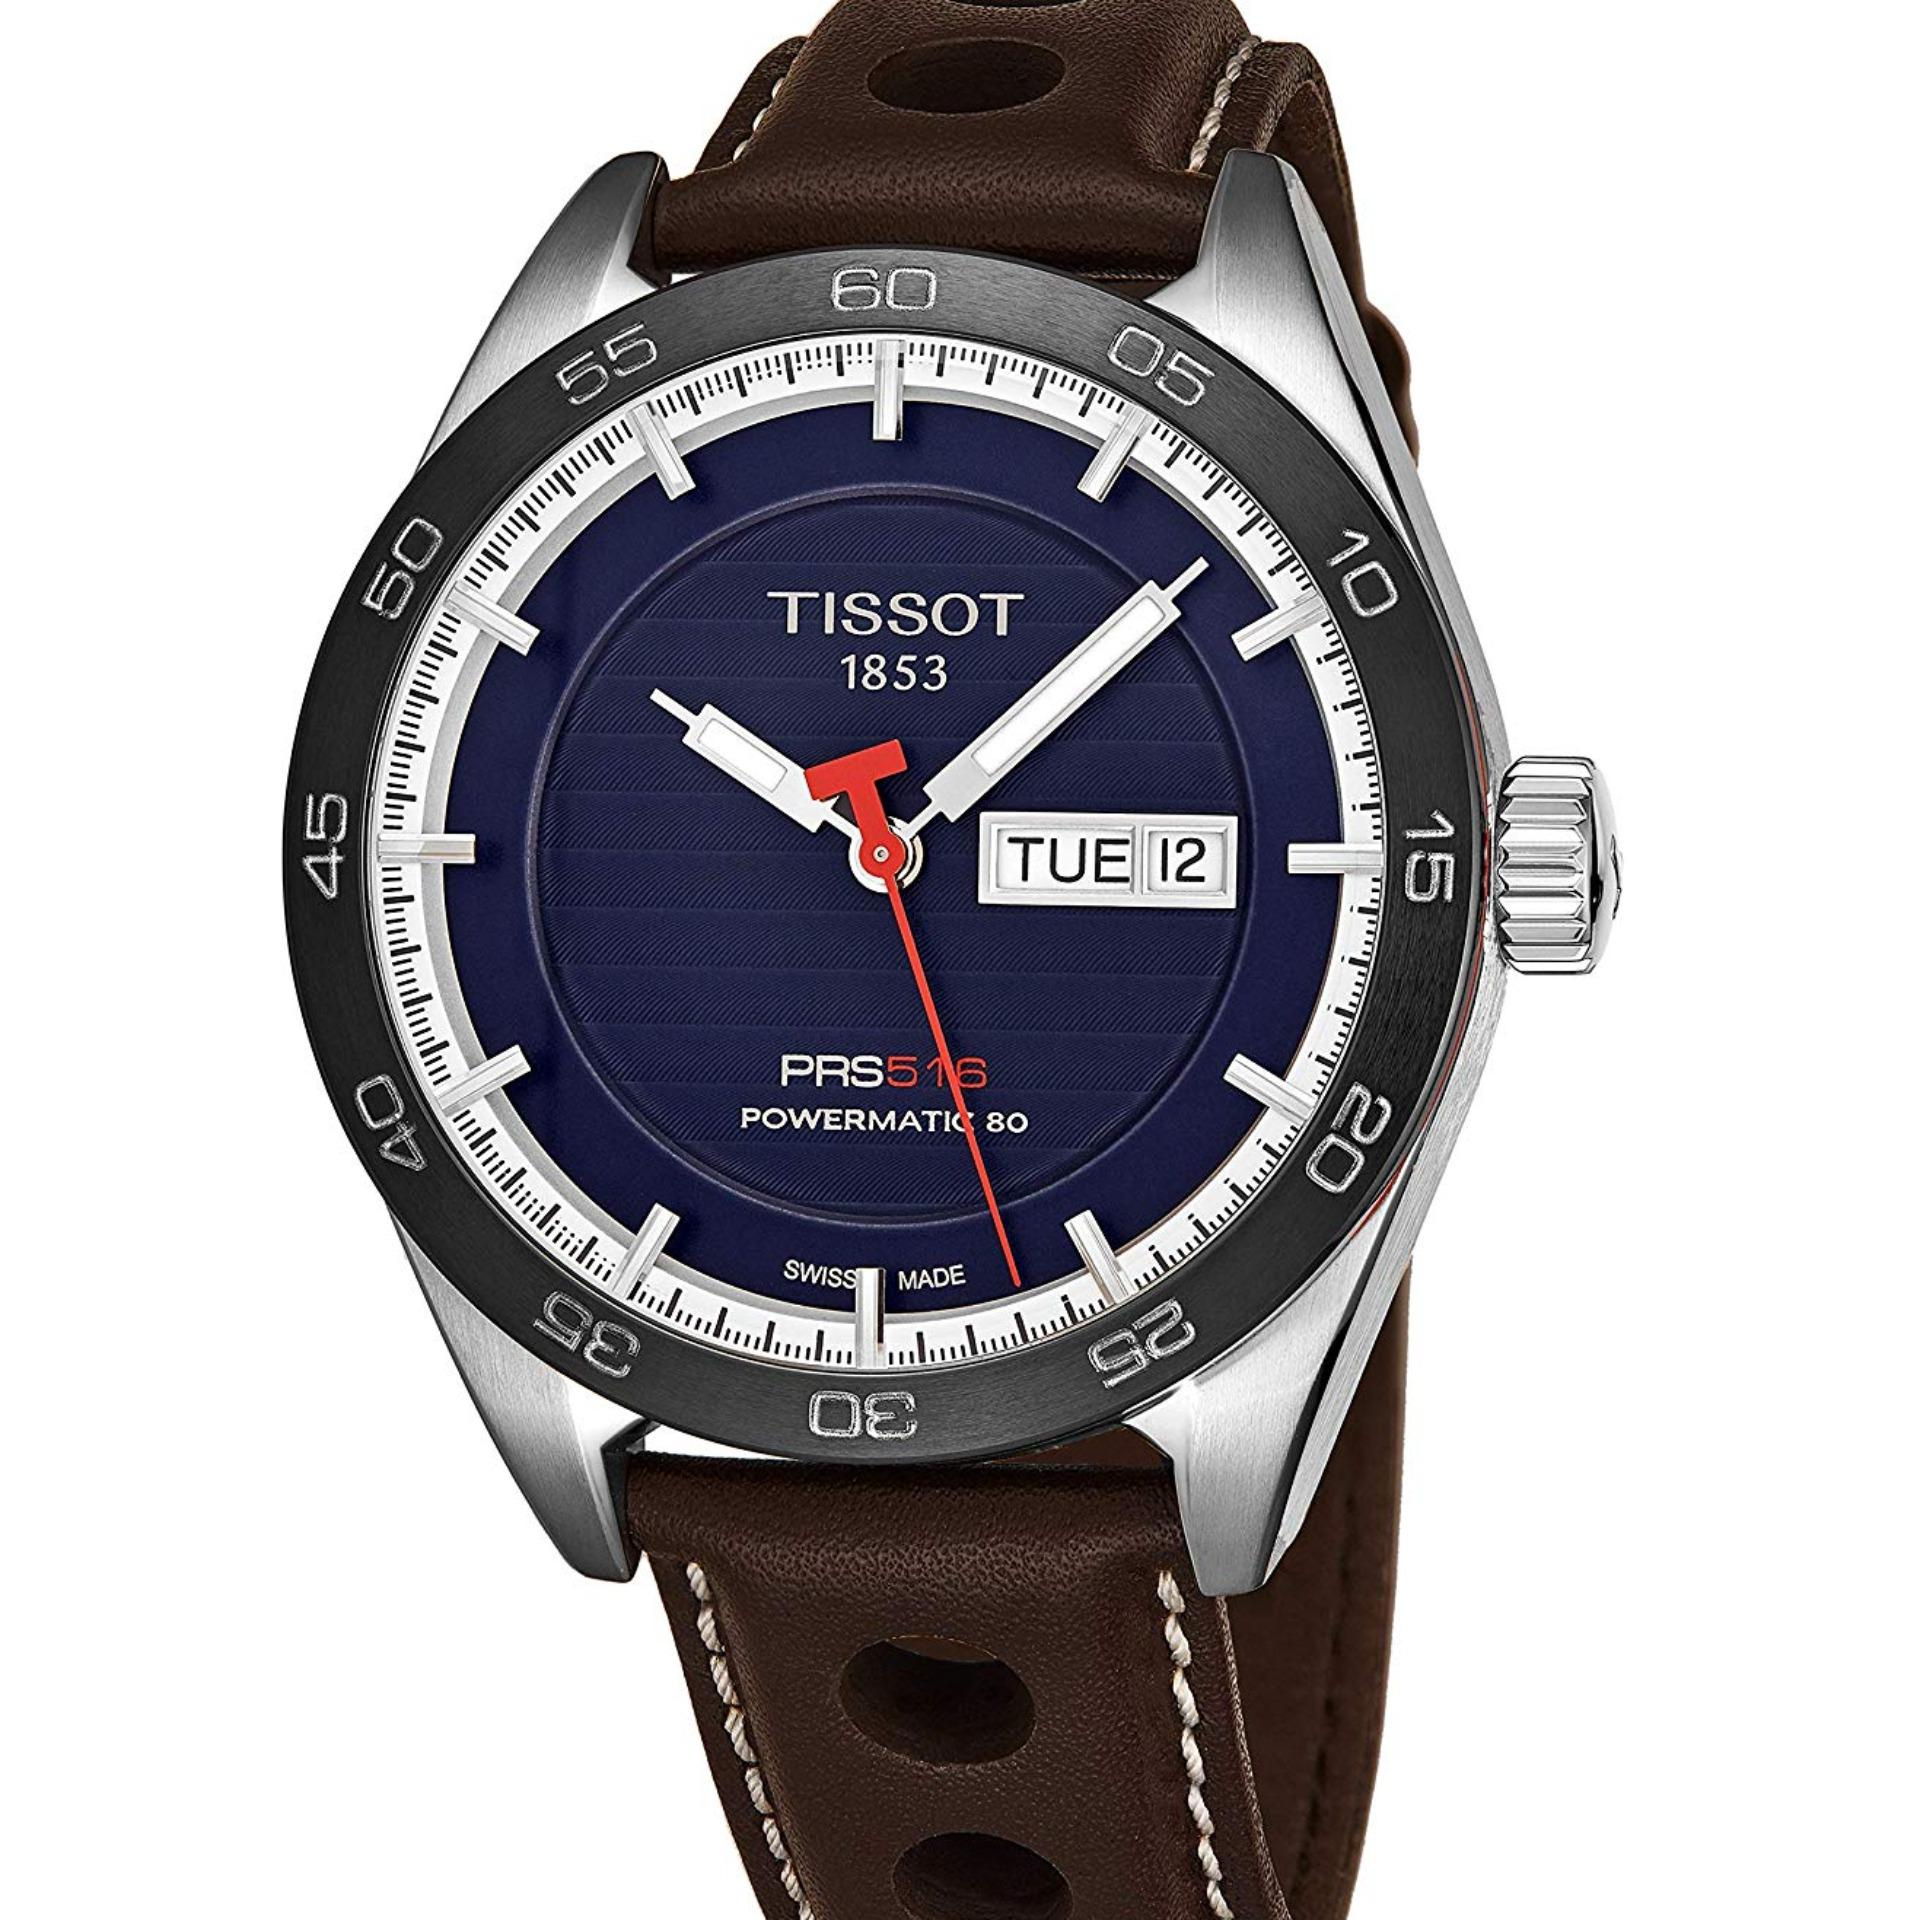 d842c3781be Tissot PRS 516 Powermatic 80 Blue Dial Automatic Men s Watch  T100.430.16.041.00